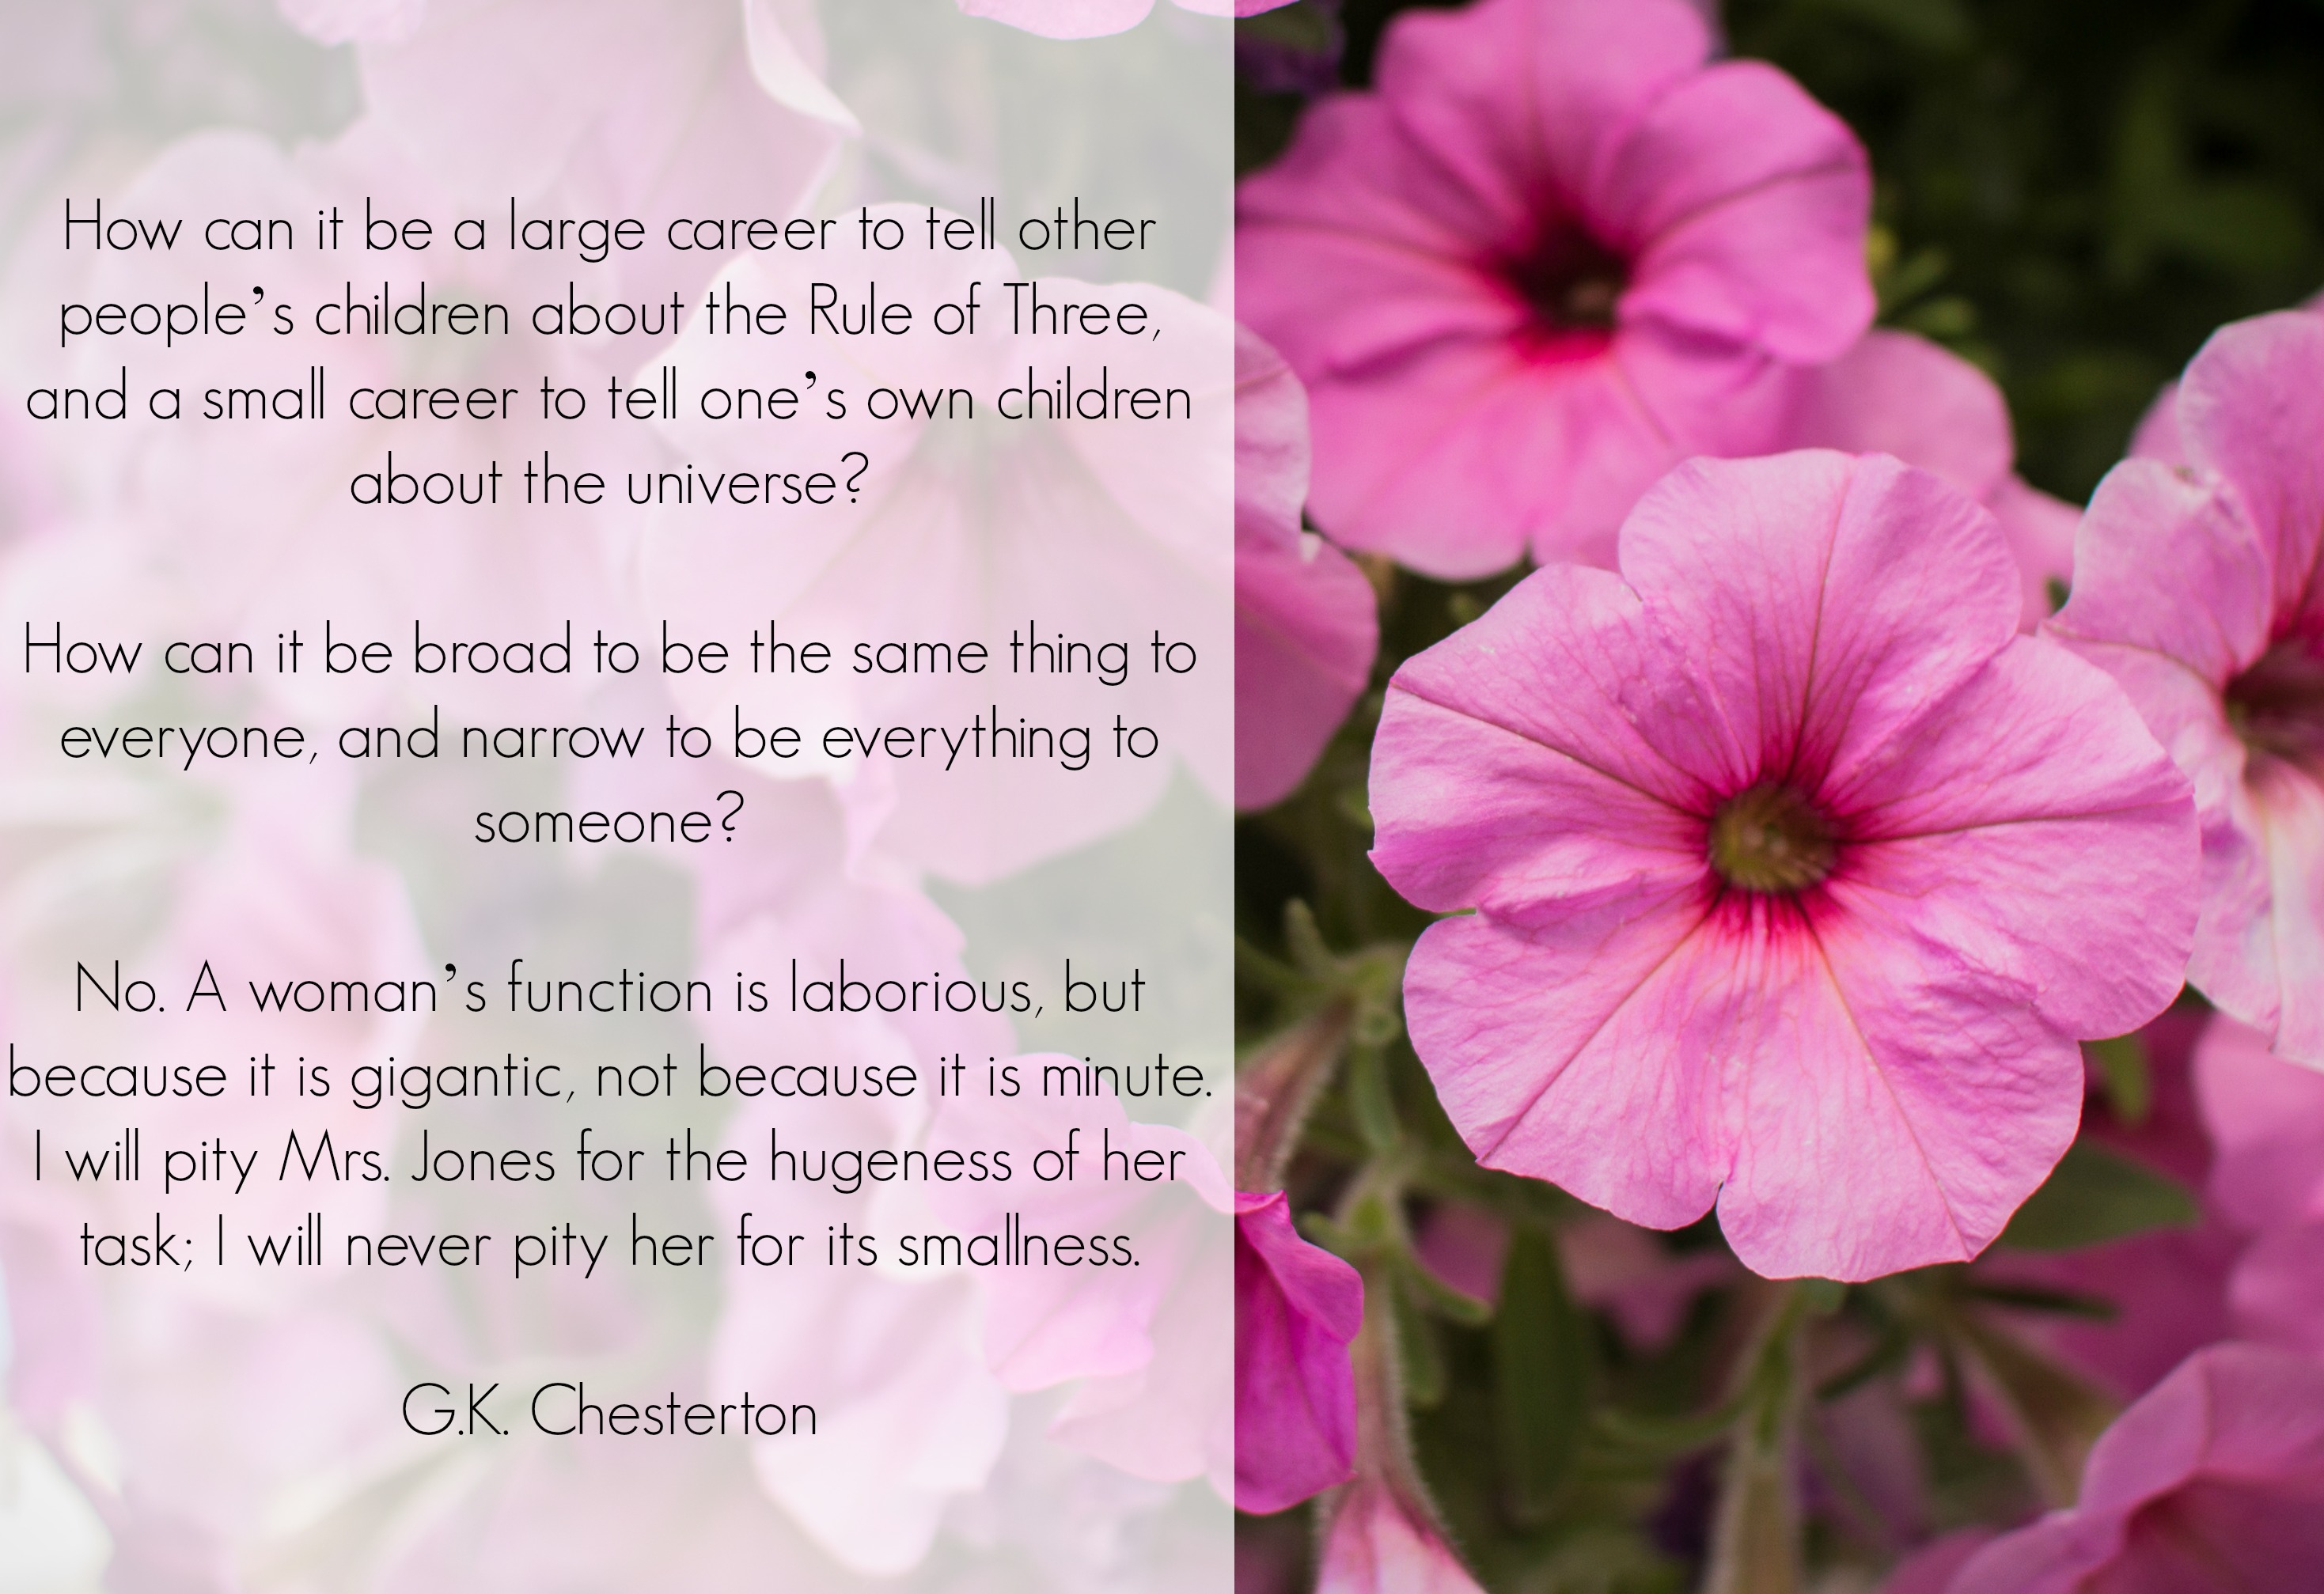 Chesterton on the Importance of Motherhood